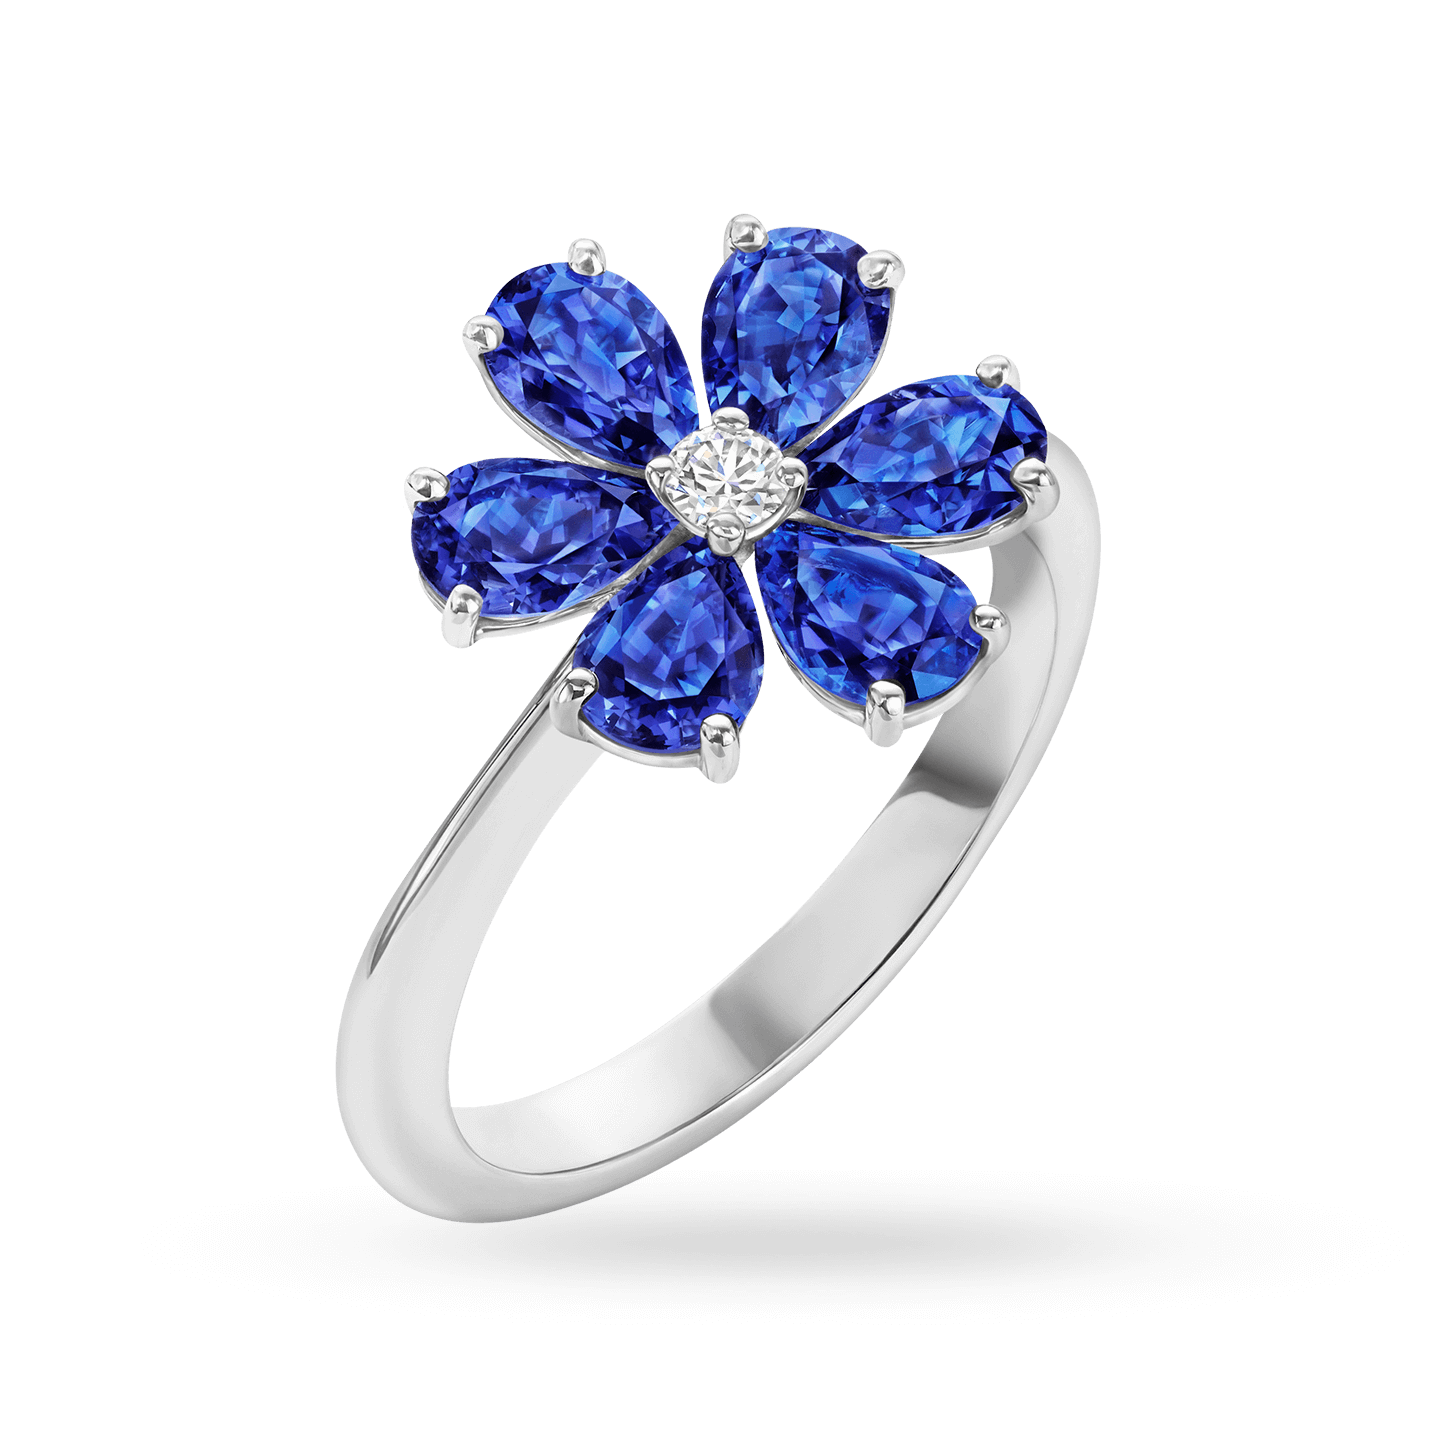 Forget-Me-Not Sapphire and Diamond Ring, Product Image 2